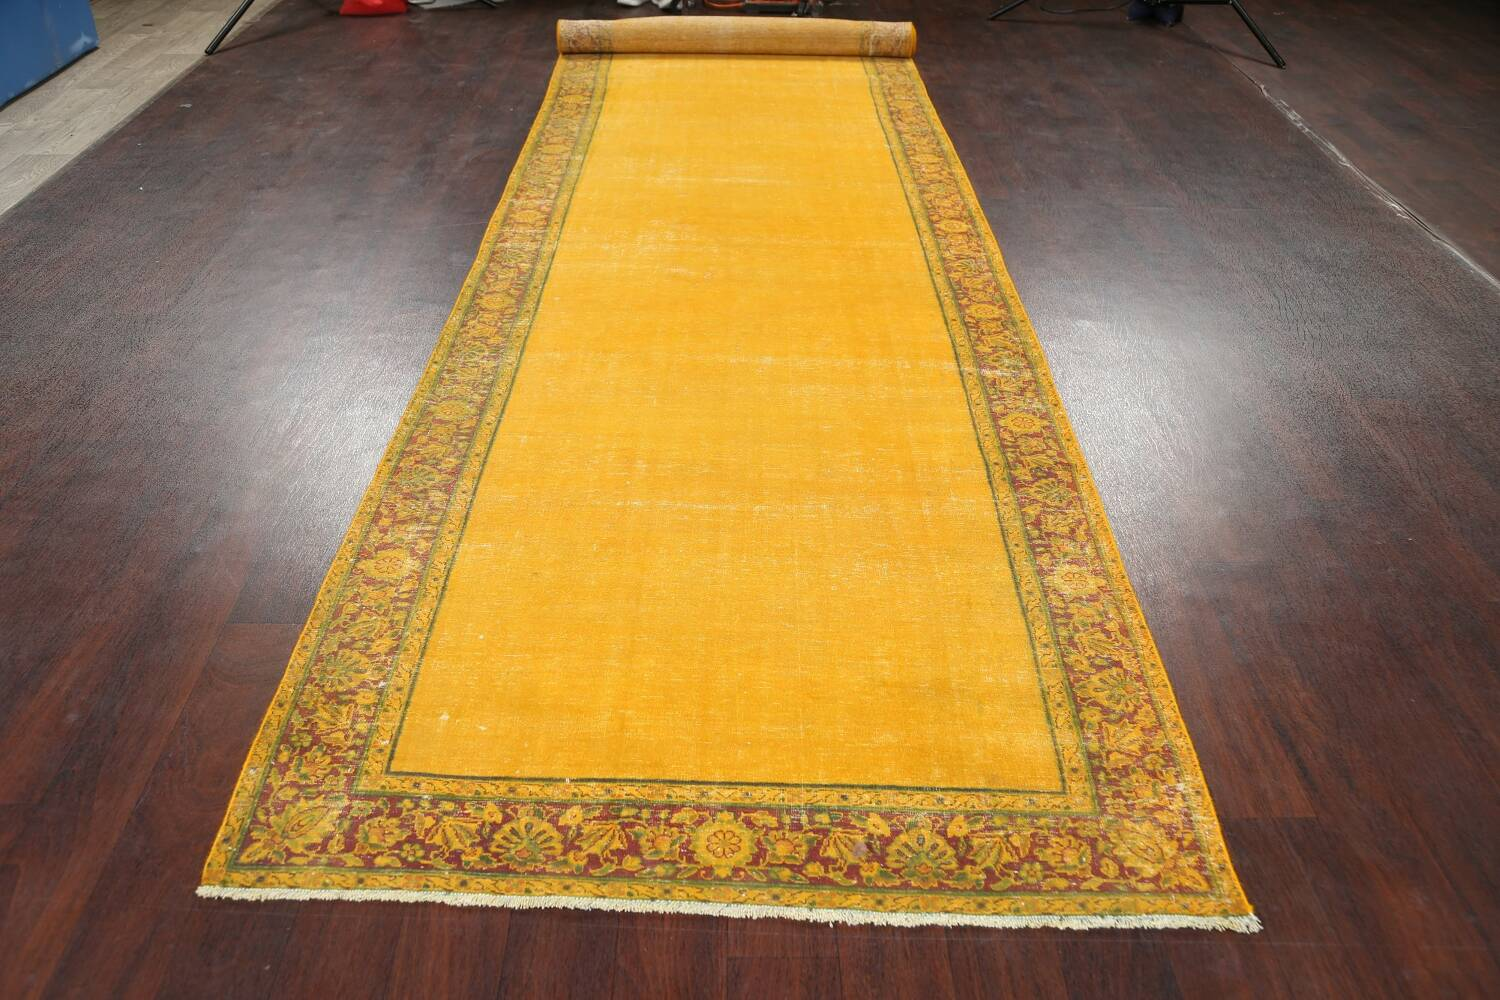 Antique Over-dyed Kerman Persian Runner Rug 4x21 image 15